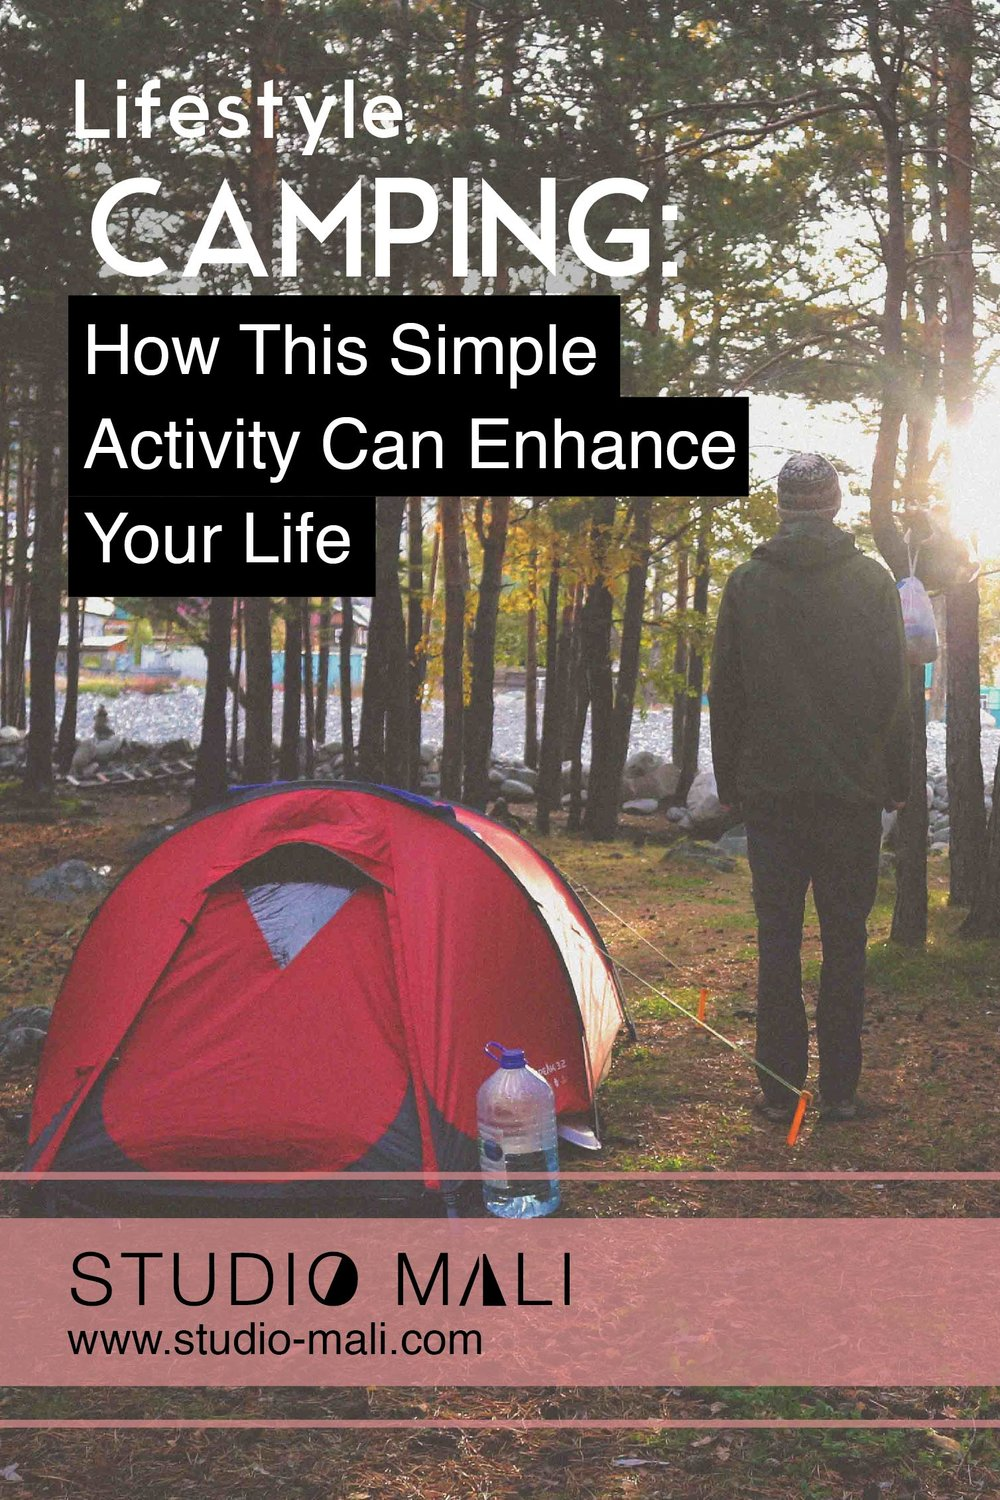 Camping - How This Sample Activity Can Enhance Your Life, by Studio Mali.jpg